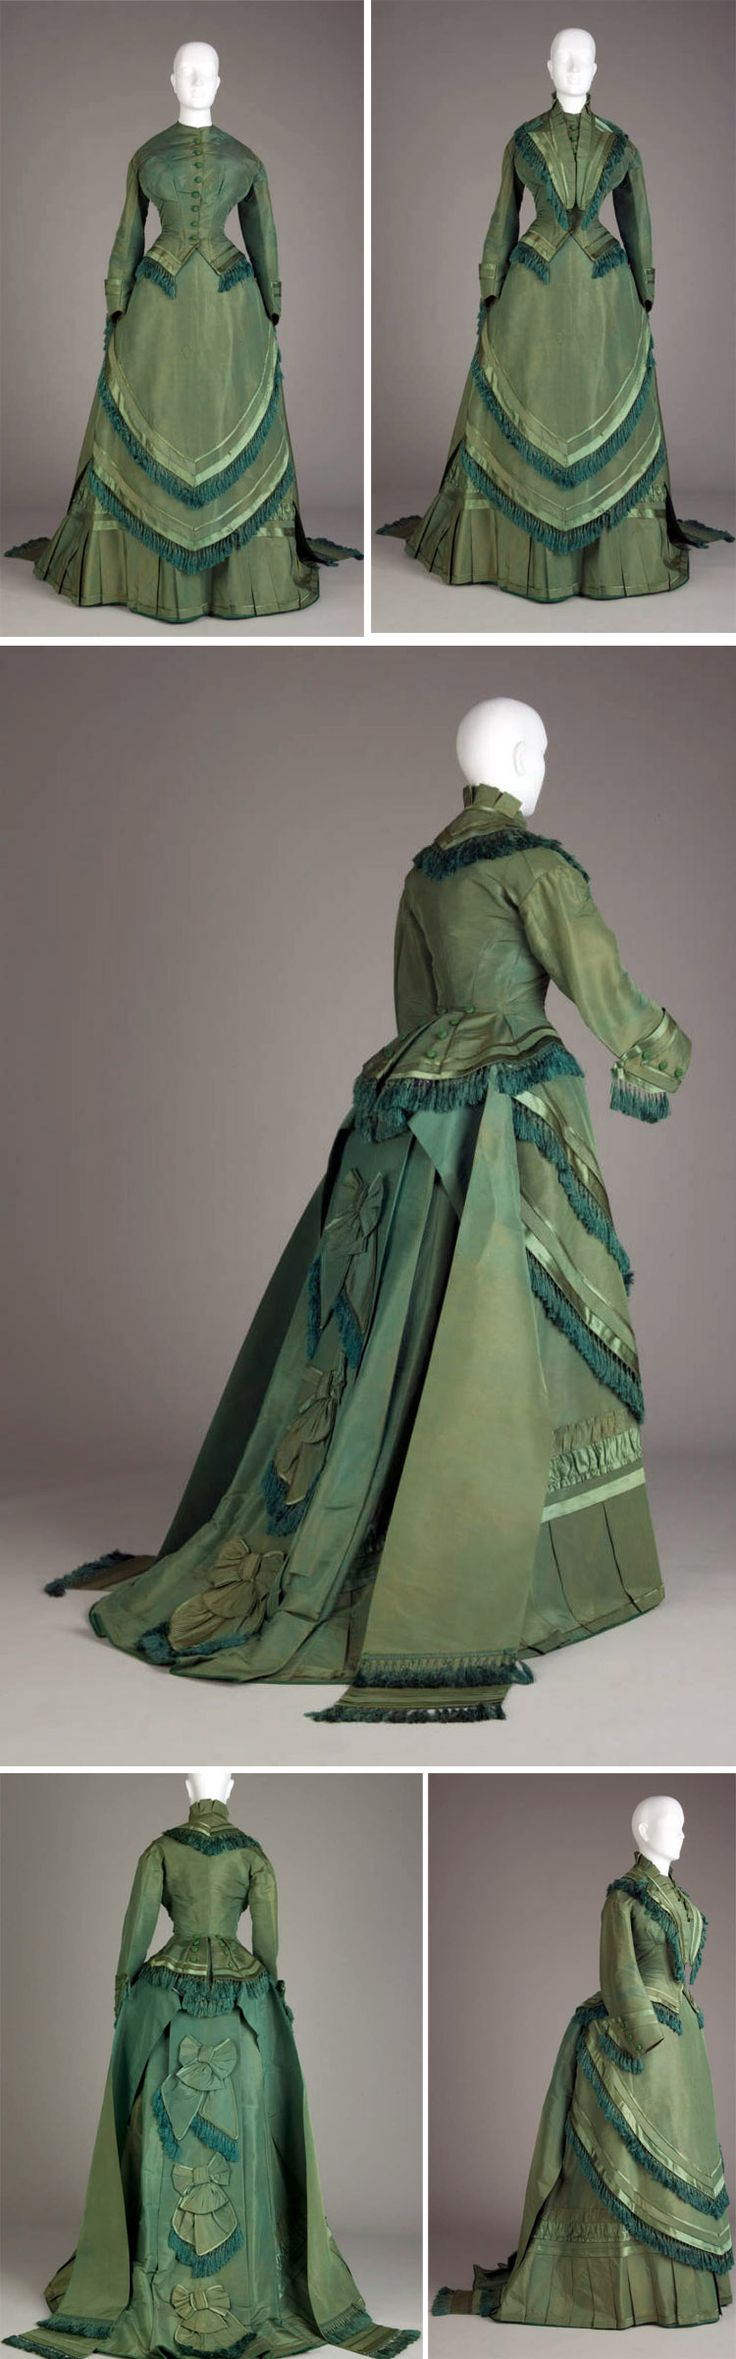 Wedding dress, 1874. Bright green silk taffeta trimmed with silk satin; 4 pieces. Fitted bodice has high neck with button-front closure, drop shoulder sleeves, and upturned cuffs at wrist. Attached peplum is open in front and is edged with dark green silk tasseled fringe. Removable collar has silk satin-trimmed lapels & fringe edging. Skirt with train. Pleated, satin-trimmed ruffle at hem. Two-layered apron with back tie closure. Chicago History Museum